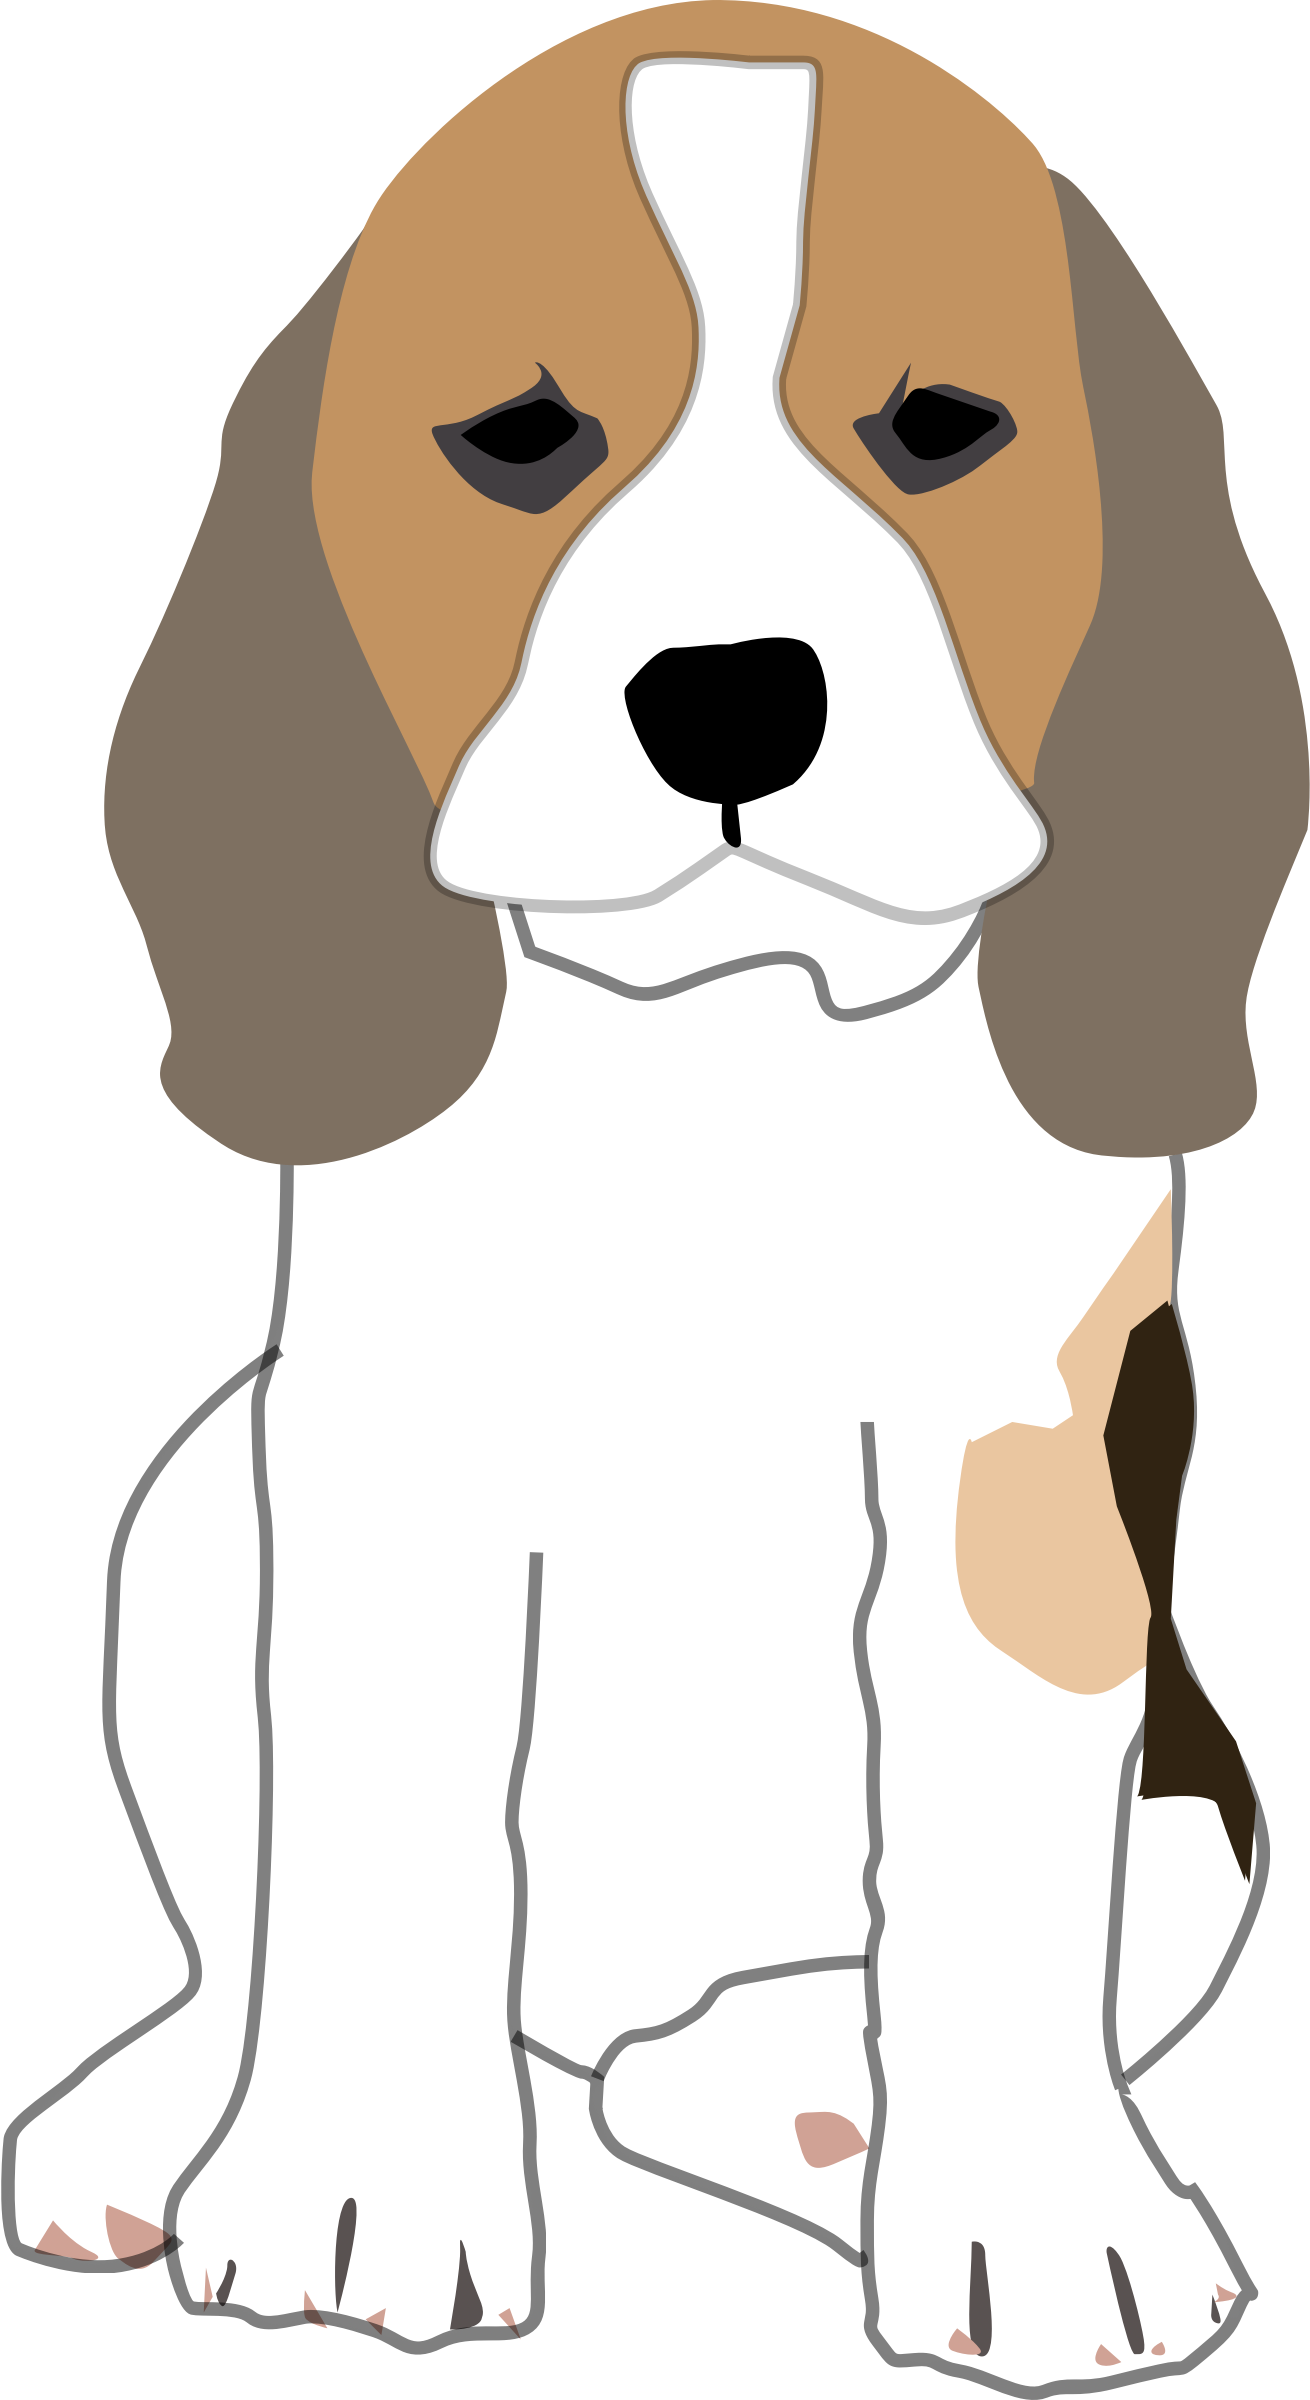 Beagle Puppy by mikestratton.net